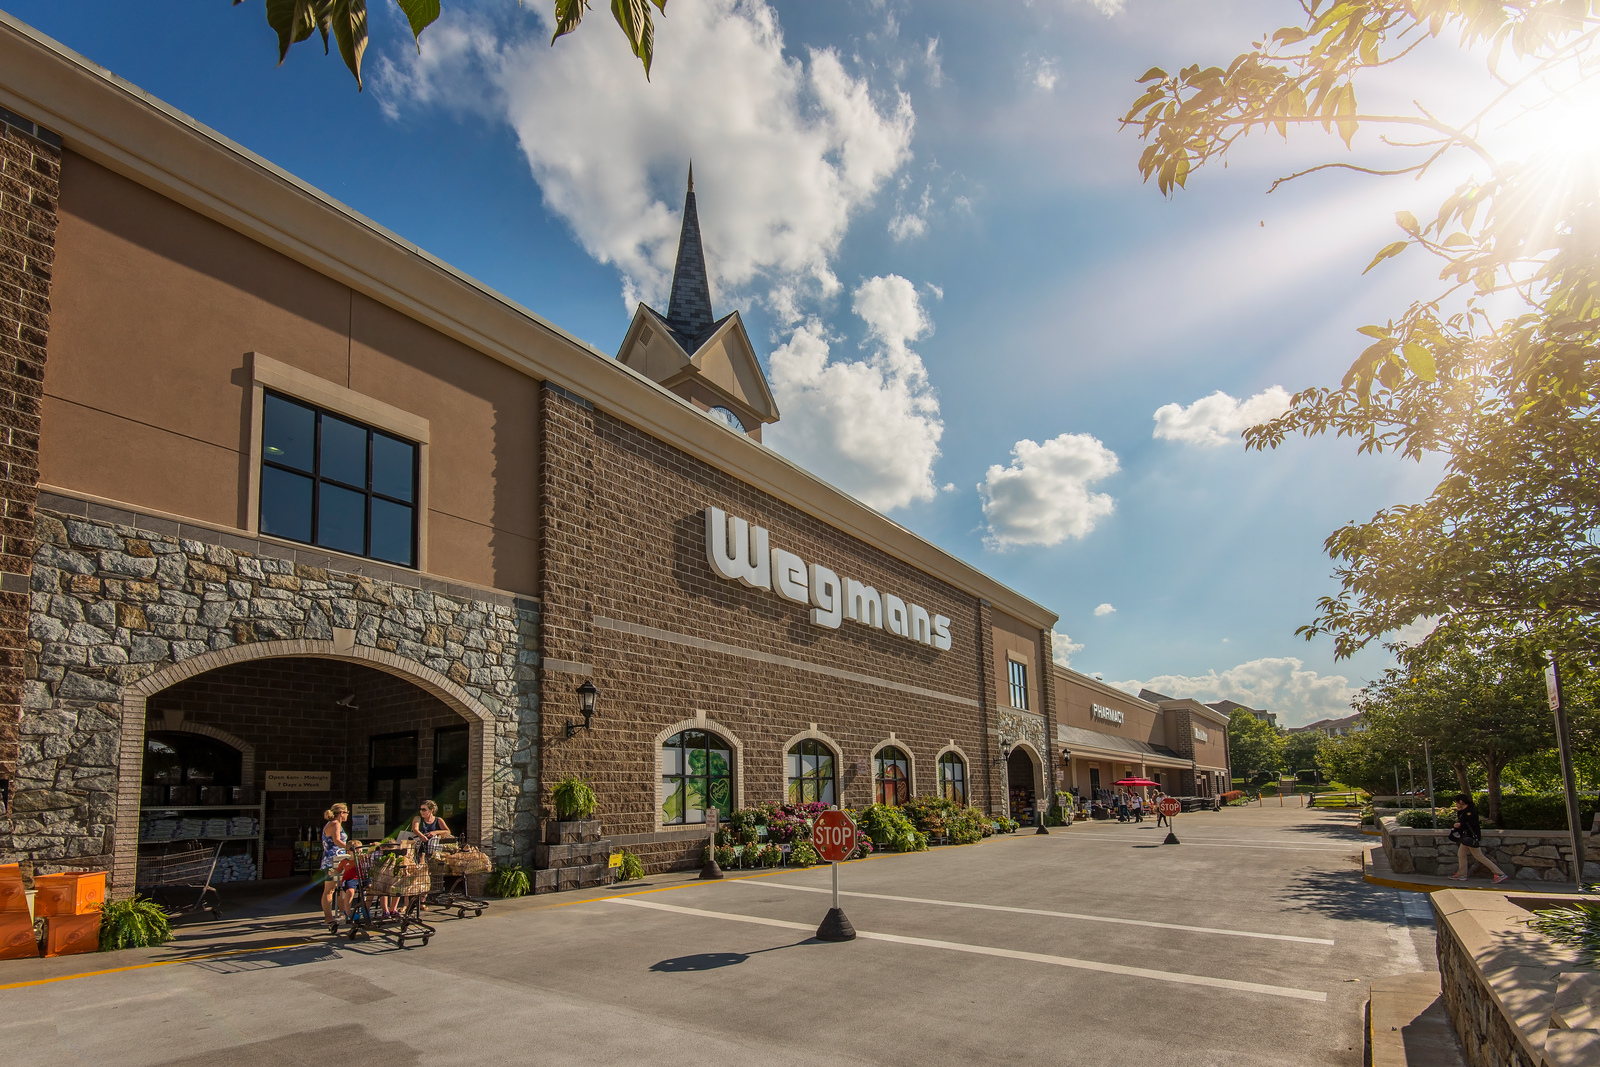 Nearby Waugh Chapel Town Center includes Wegmans, where you'll enjoy a first-class shopping experience and amazing in-store services.